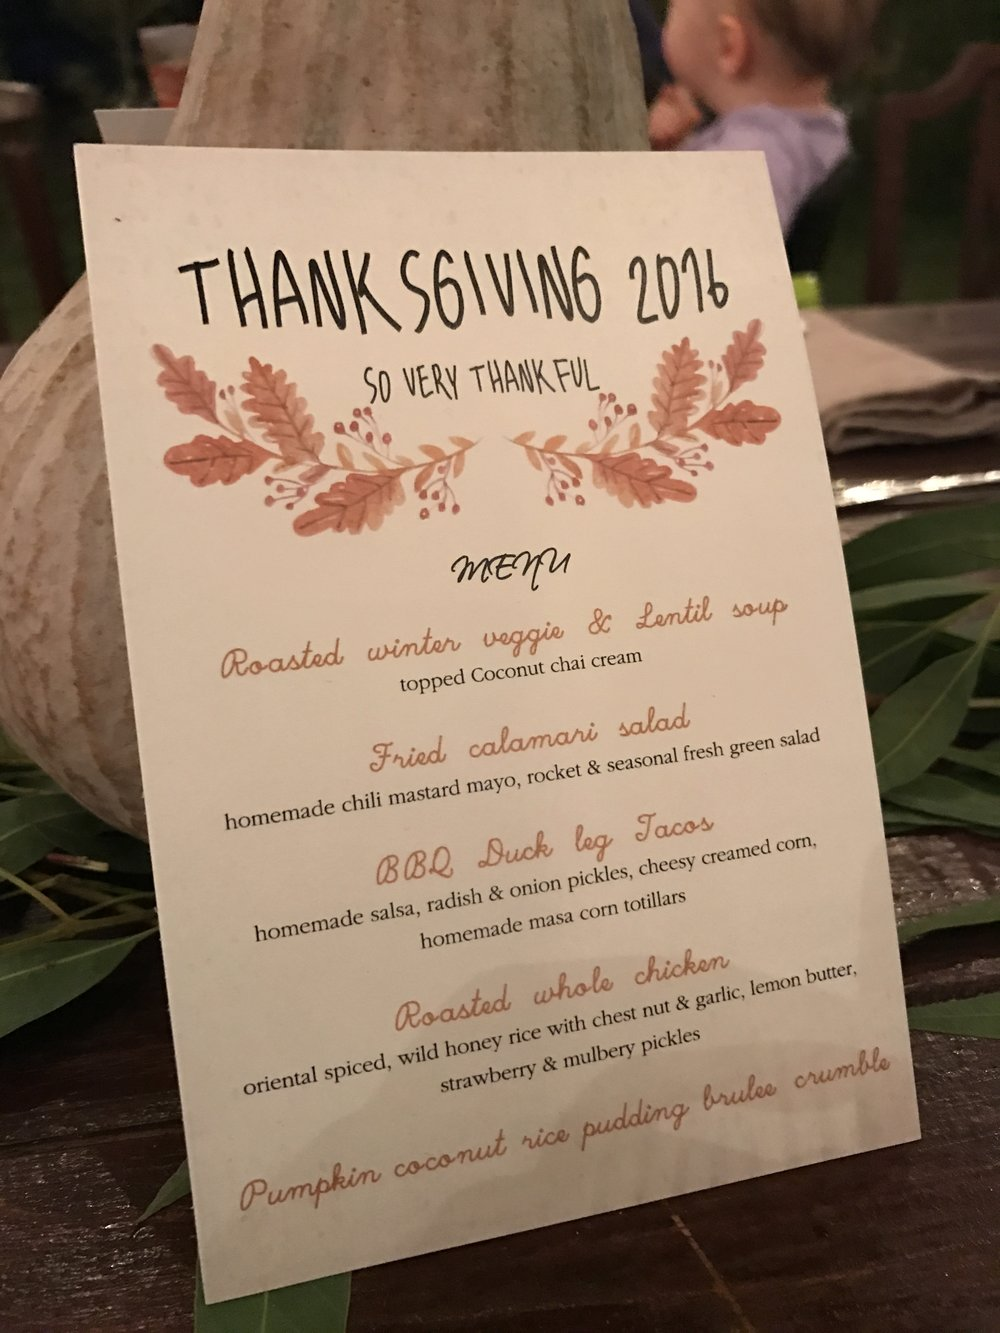 Rustic and Blue Farm Dinner November 2016 Menu